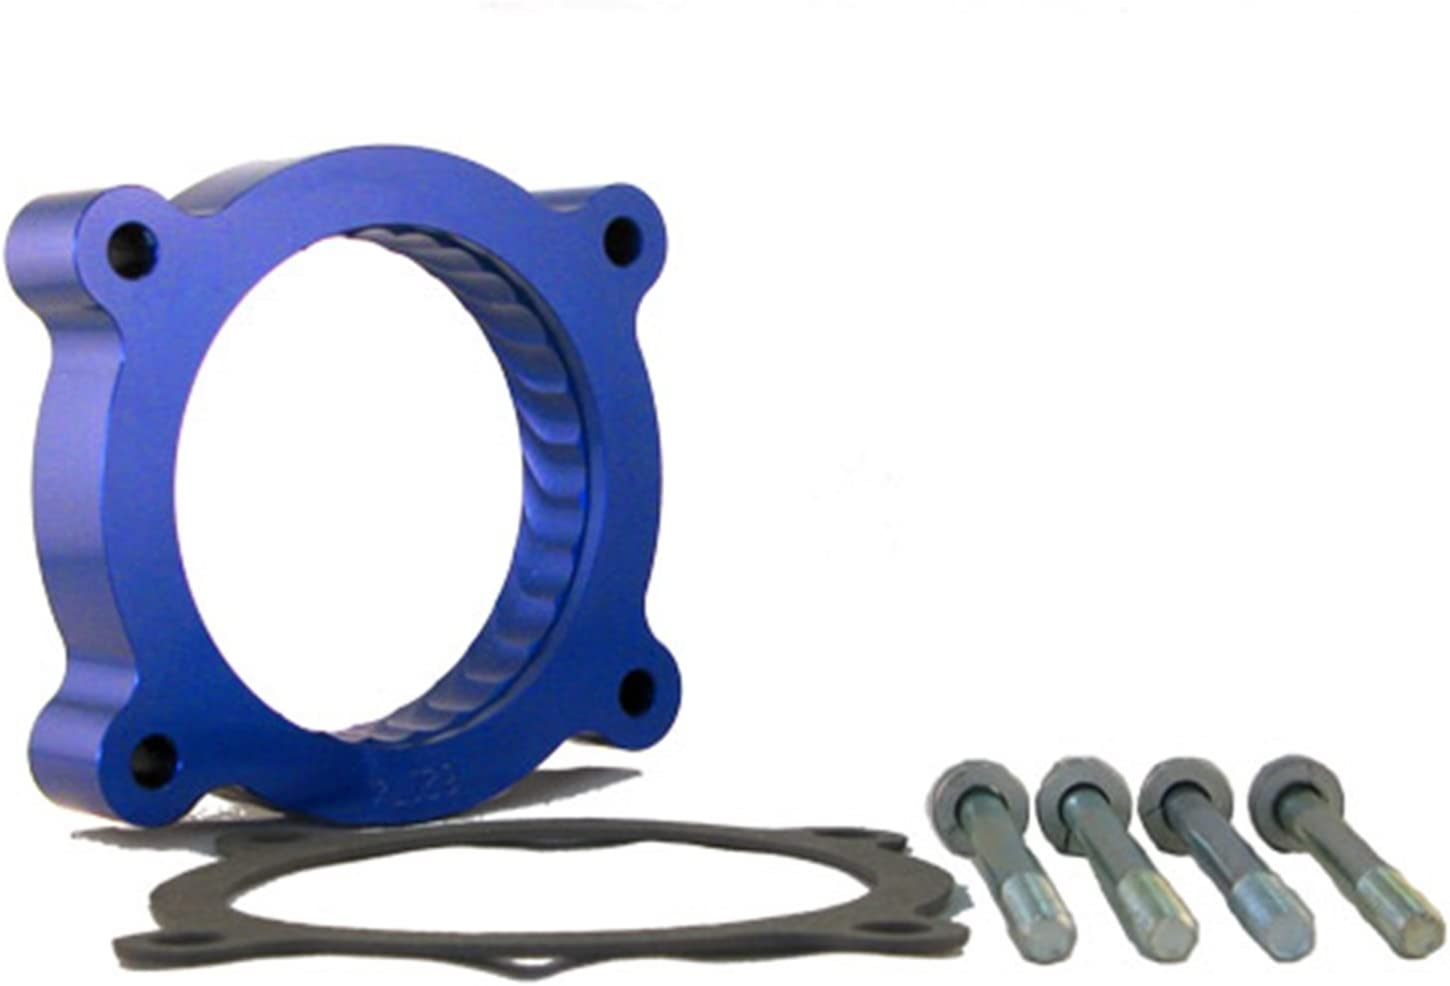 JET 62174 New It is very popular product Powr-Flo Body Spacer Throttle